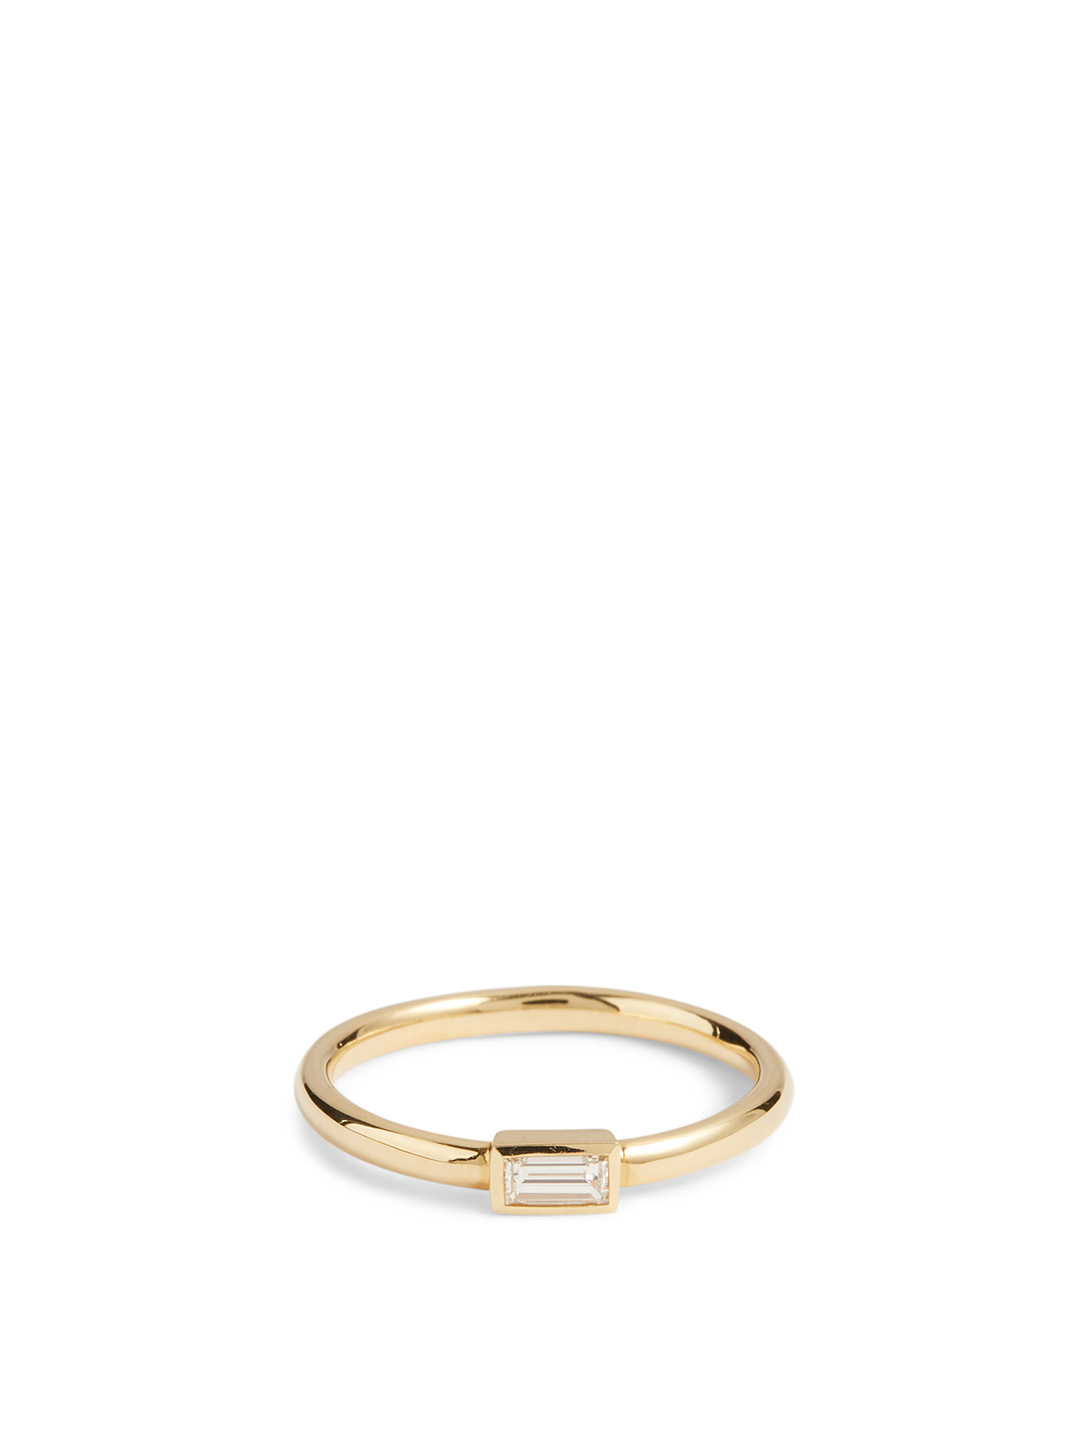 MARIA CANALE Essentials 18K Gold Horizontal Baguette Stacking Ring With Diamond Women's Metallic